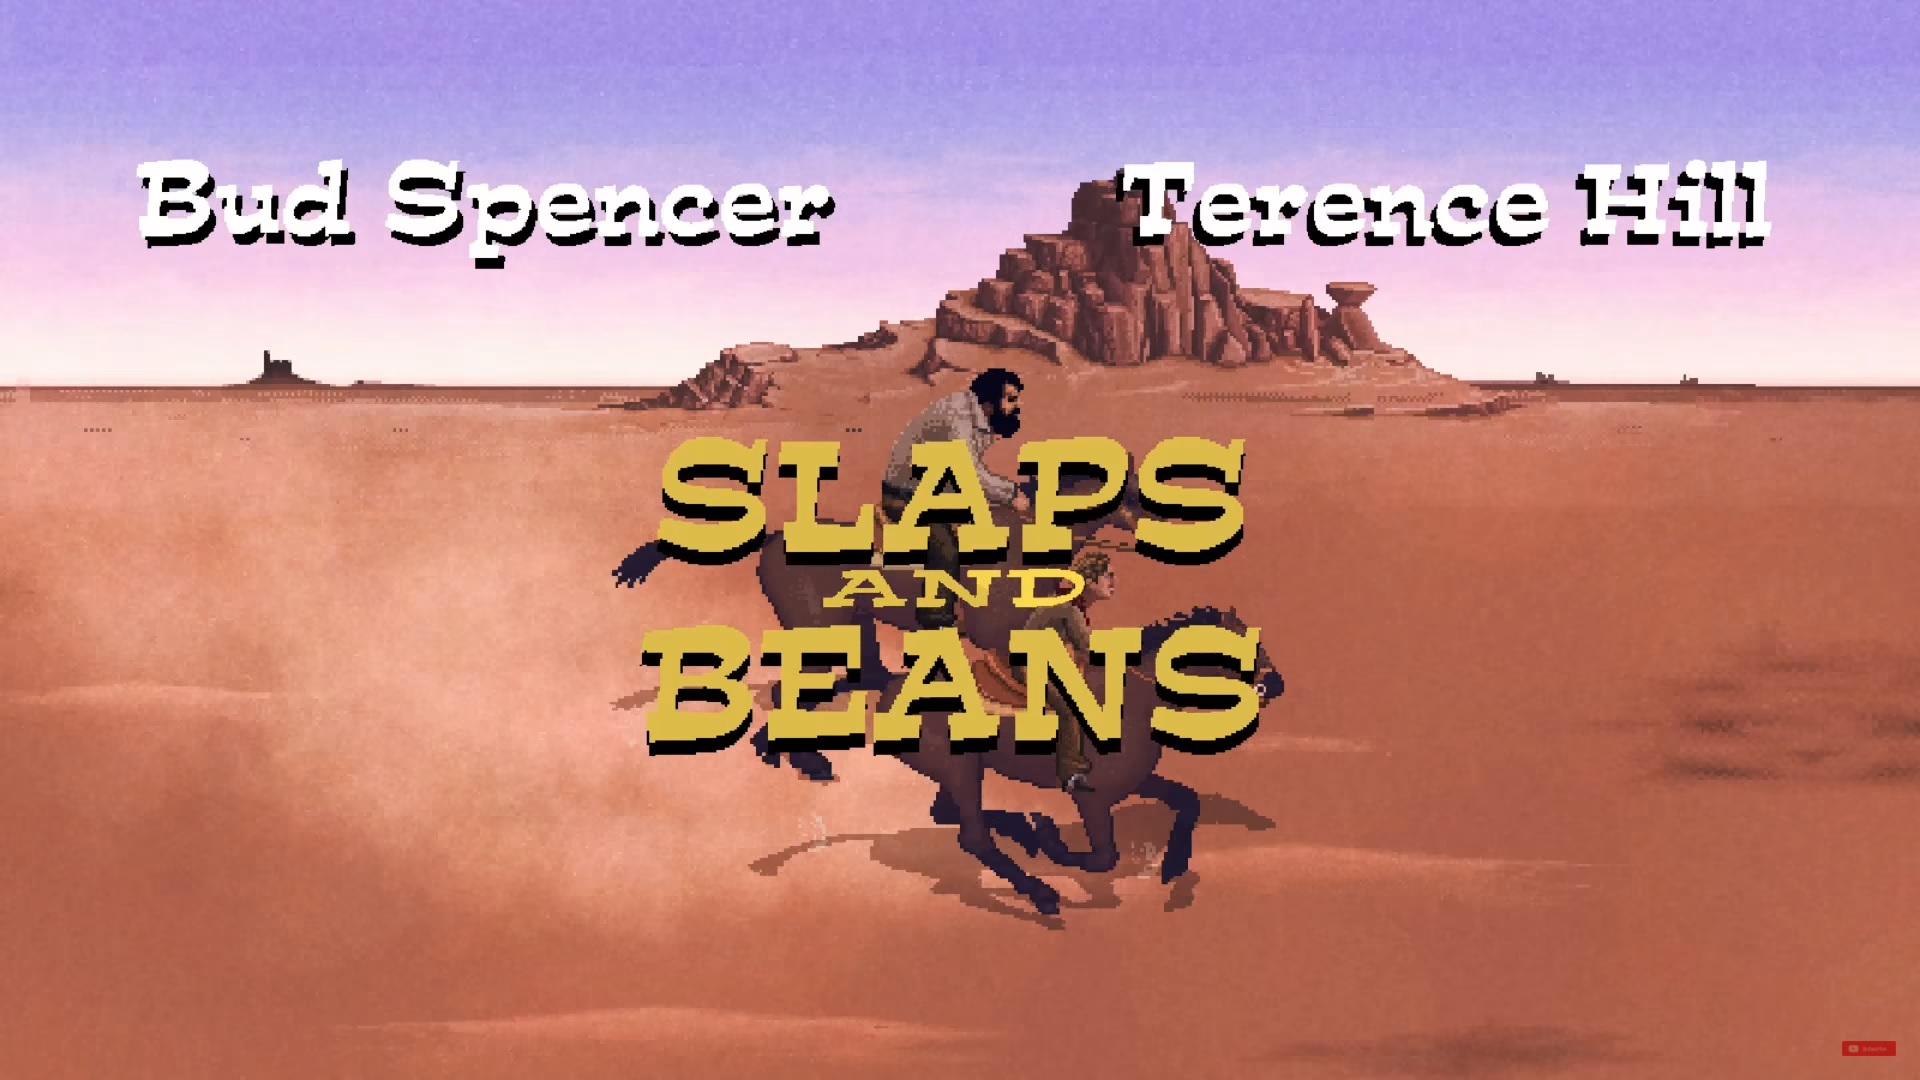 bud_spencer_and_terence_hill_slaps_and_beans.jpg